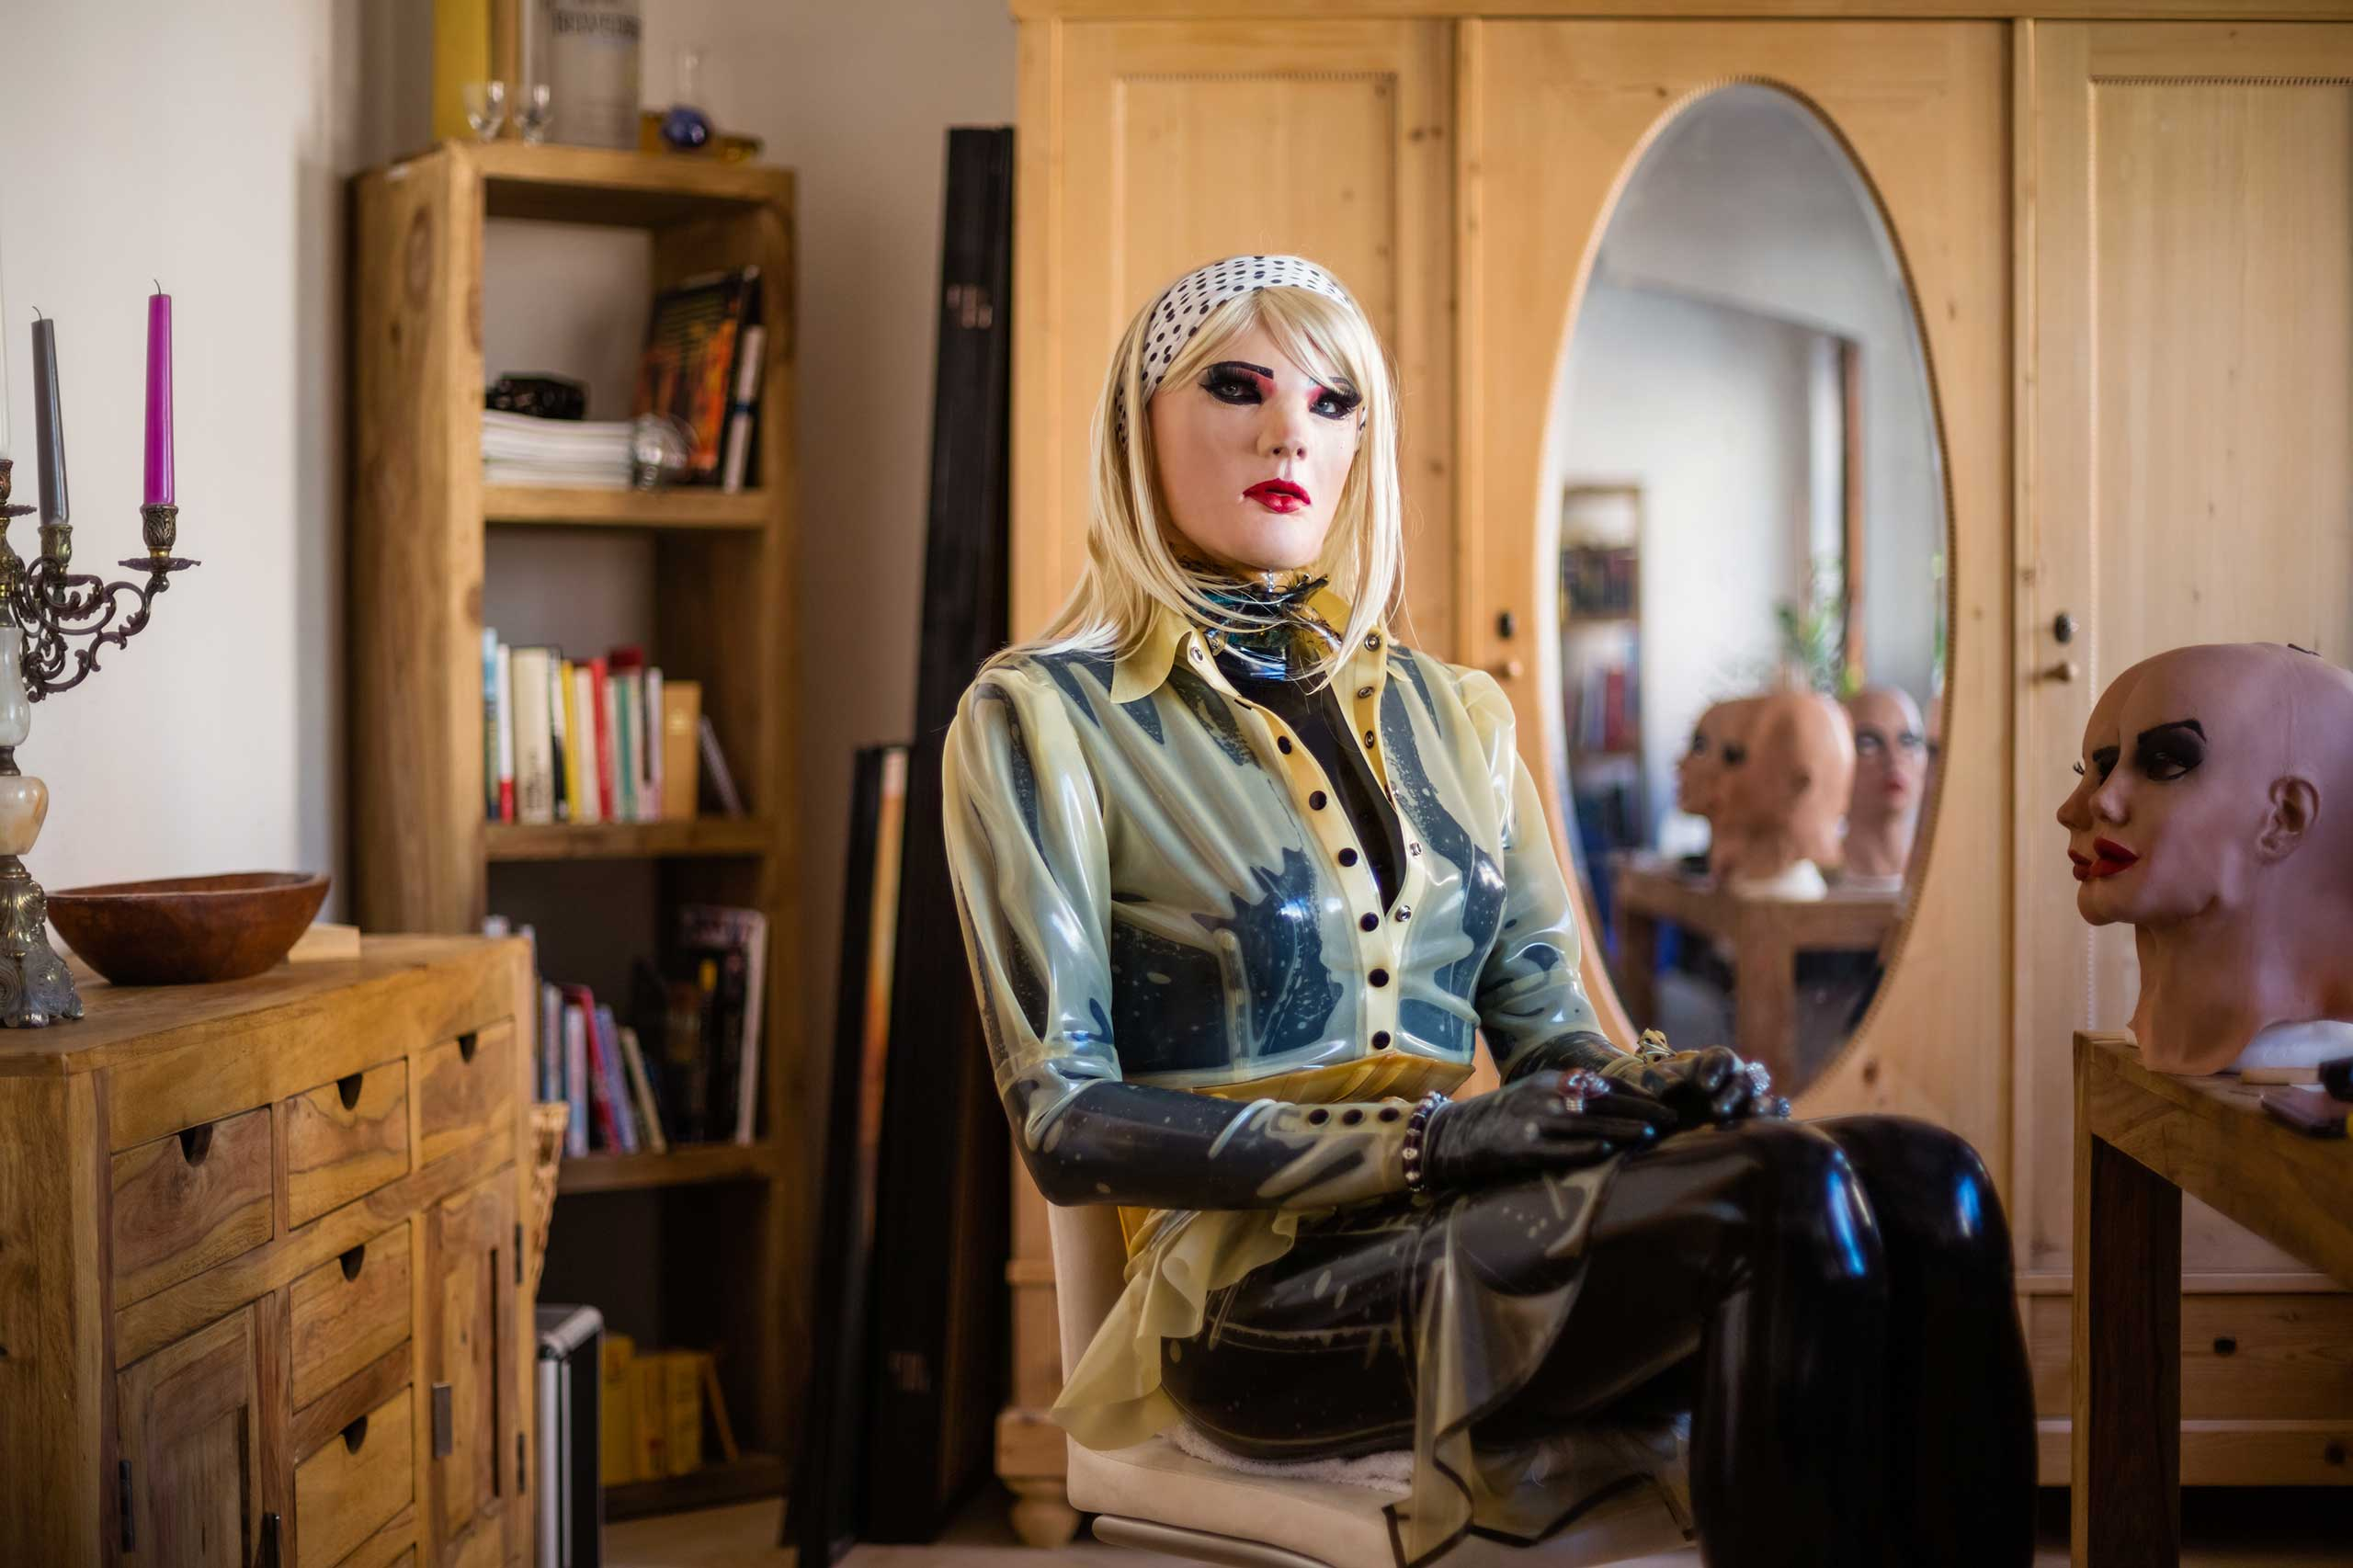 Portrait of female masker Christian alias 'Chrissie Seams', double the age of his alter ego, in his living room. Female masking presents an outlet for him, as a heterosexual and cisgender male, to live out his female side and latex fetish. On his right stand a variety of masks that he uses for experimenting with airbrushing and other alteration techniques in order to individualise the look of his alter ego.                                                                Since my childhood I have been fascinated by latex, which very soon merged with my aspirations to look as sexy as a woman. I remember the first time I had the wish to slip into a woman's skin was at the age of 14 when I saw a model wearing sexy lingerie in a Penthouse magazine. I imagined slipping into her skin, like slipping into a surface made from latex.                               I love the feeling of being encapsulated and the sensitization from head to toe when wearing latex. At the same time I endeavor aesthetics. Visually, I only like latex on women, hence I don't gain anything from my fetish if not dressed as a woman myself. Many times I wondered if there was a Chrissie if it wasn't for my passion for latex.                                Augsburg, Germany, Aug. 5, 2015.